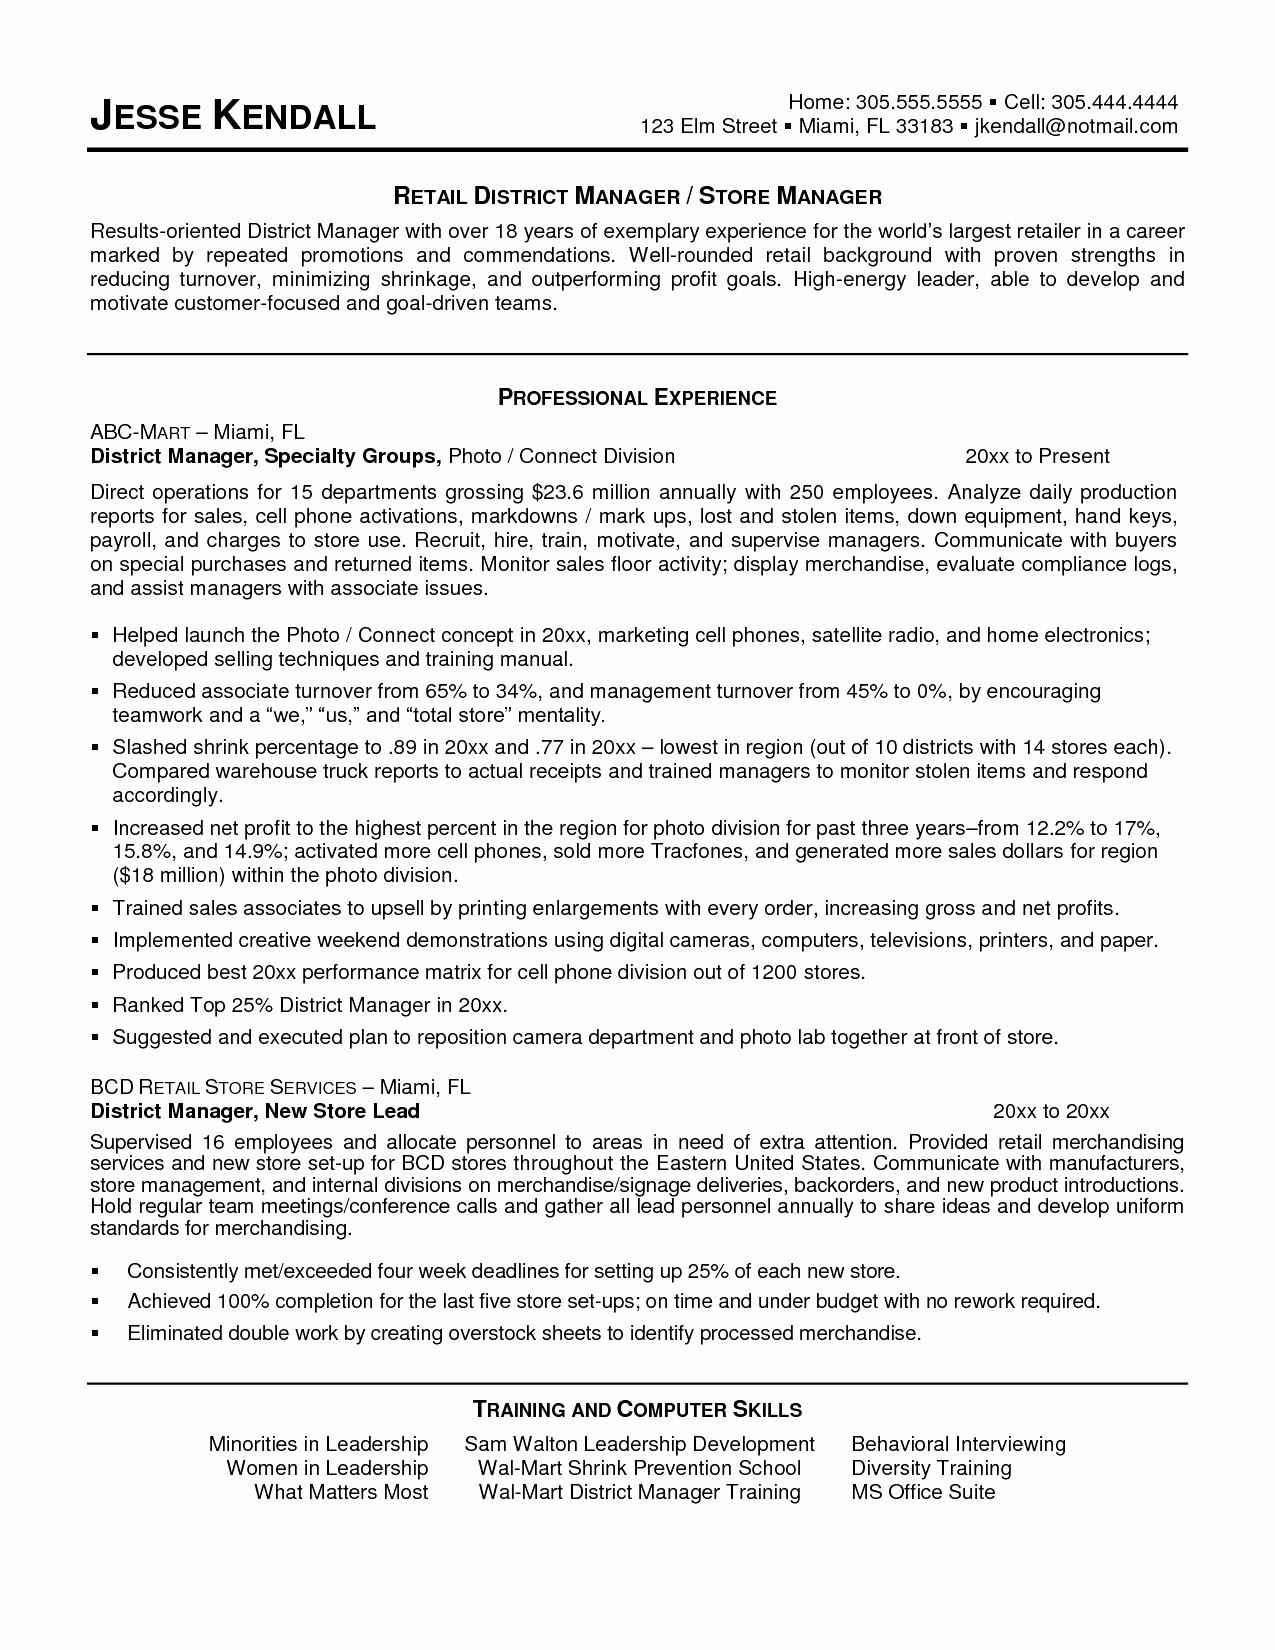 What Computer Skills to List On Resume - Resume Skills List Fresh What is A Resume New Lovely Skills for A